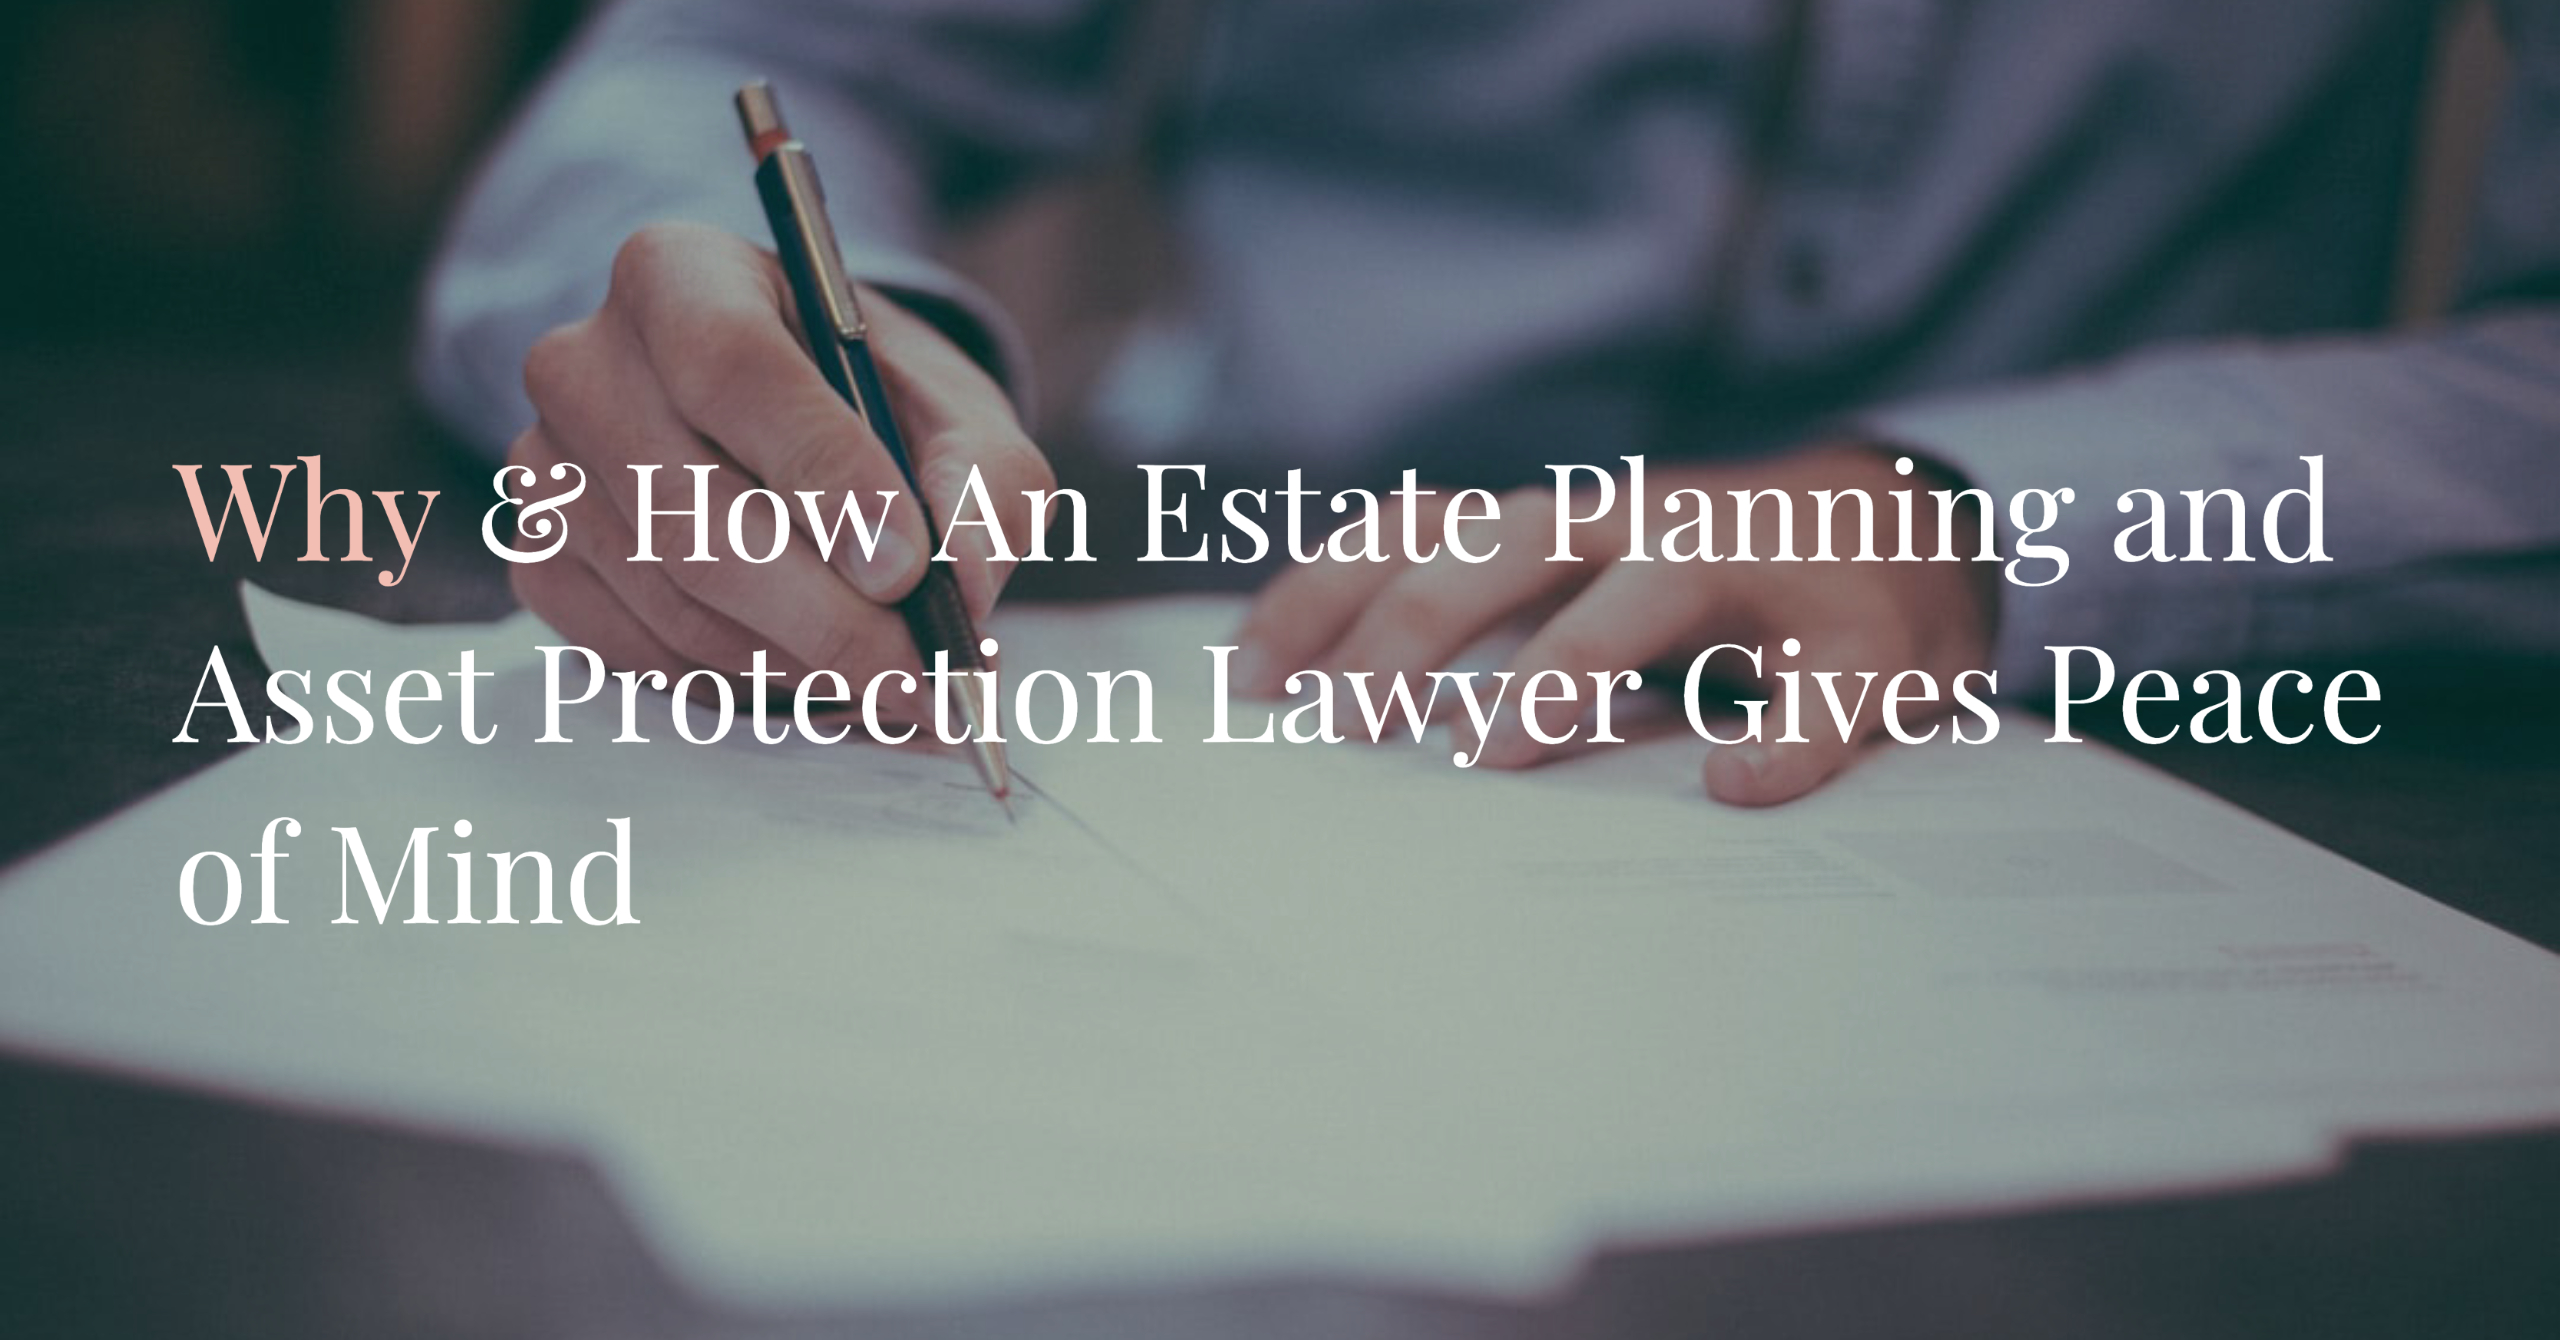 Image of seet protection power of attorney pandemic get a will estate planning COVID 19 coronavirus  on estate management asset protection law site